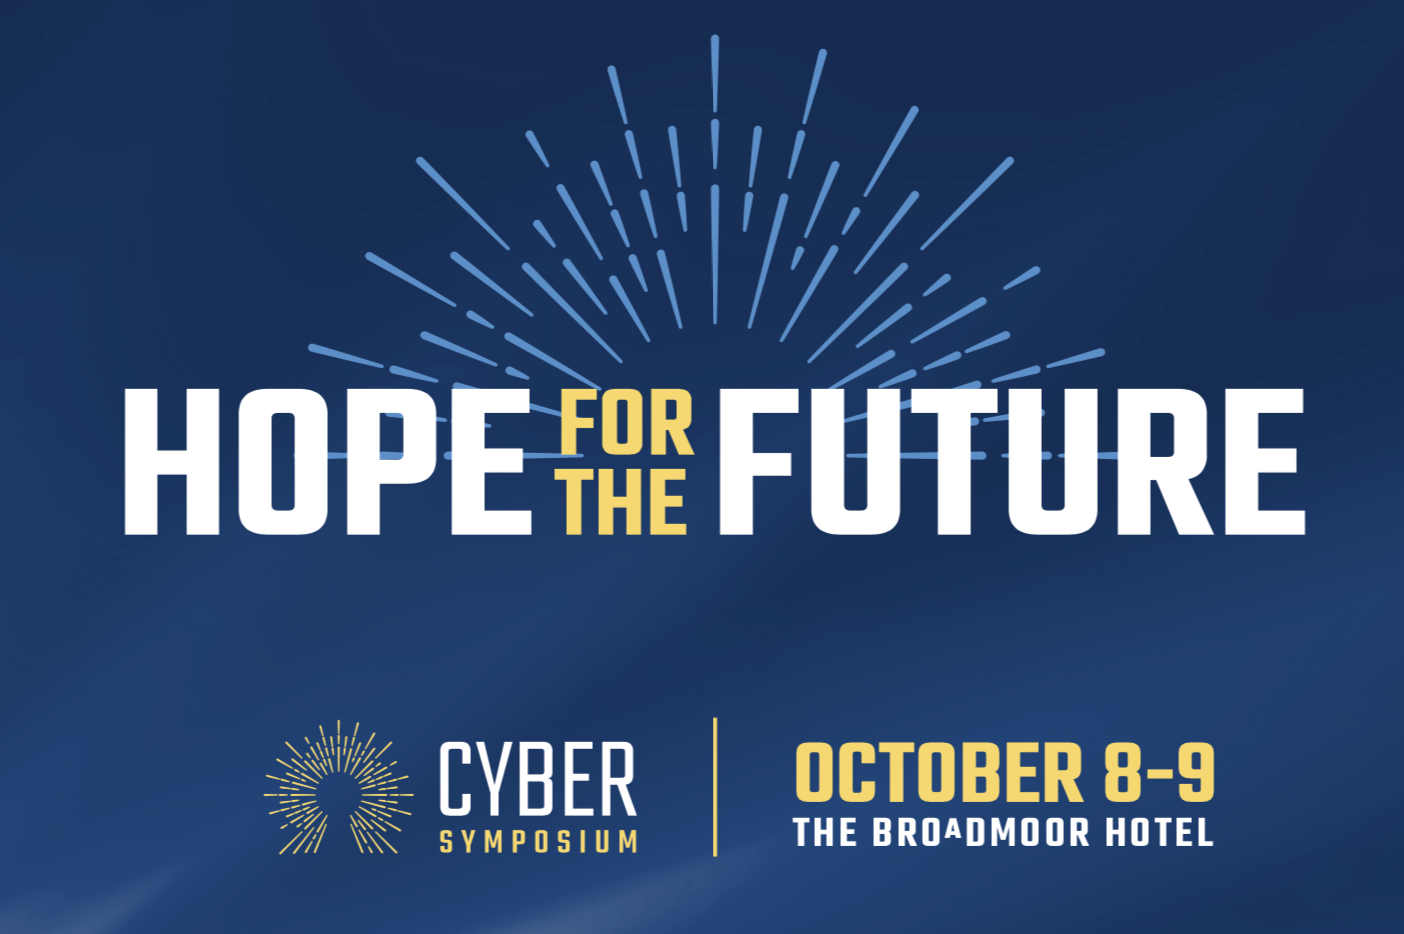 2018 Cyber Symposium logo and dates